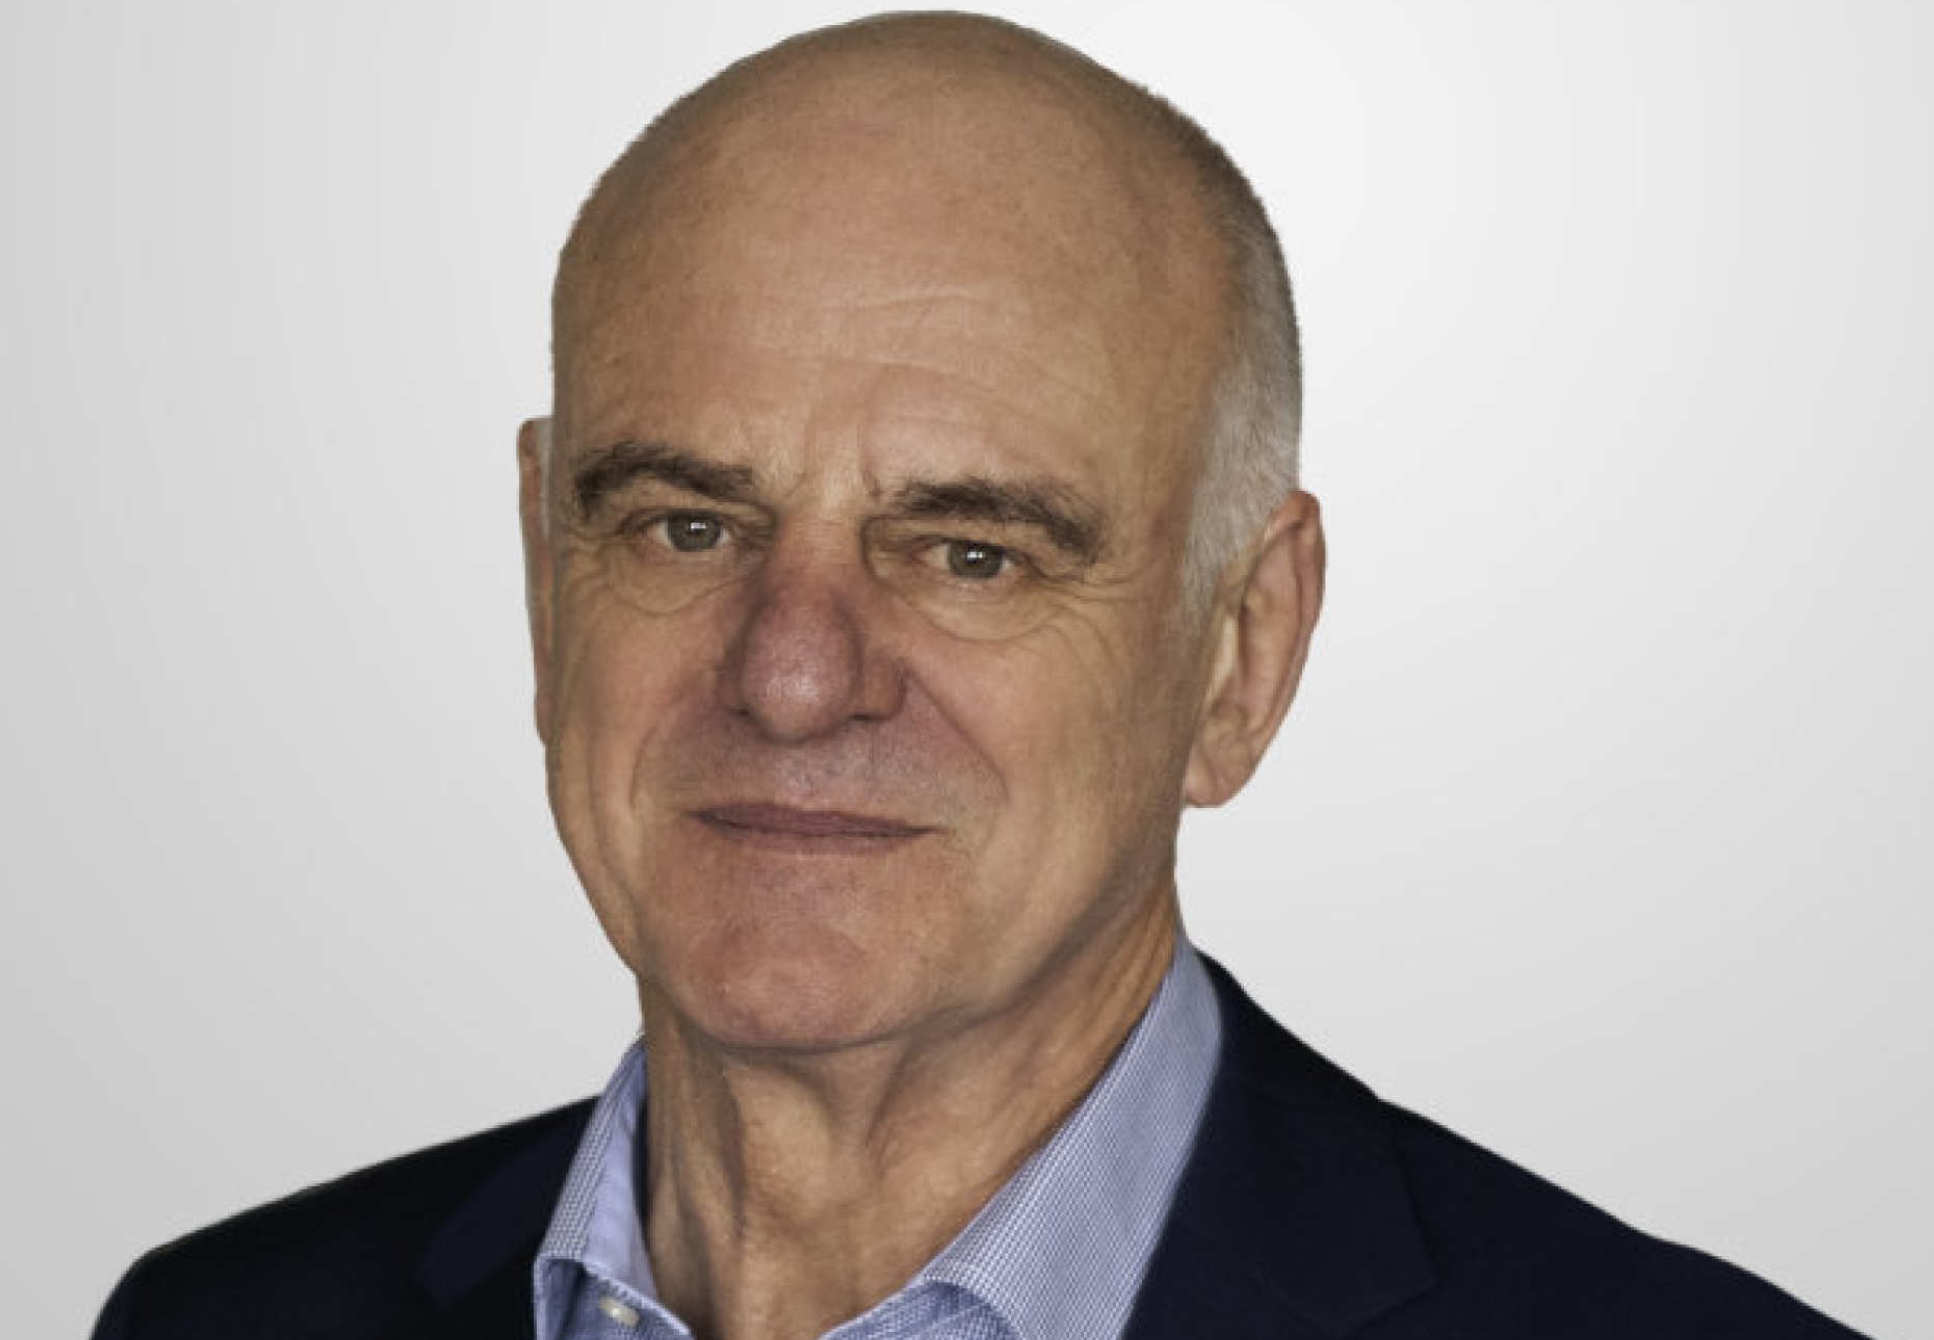 Professor David Nabarro